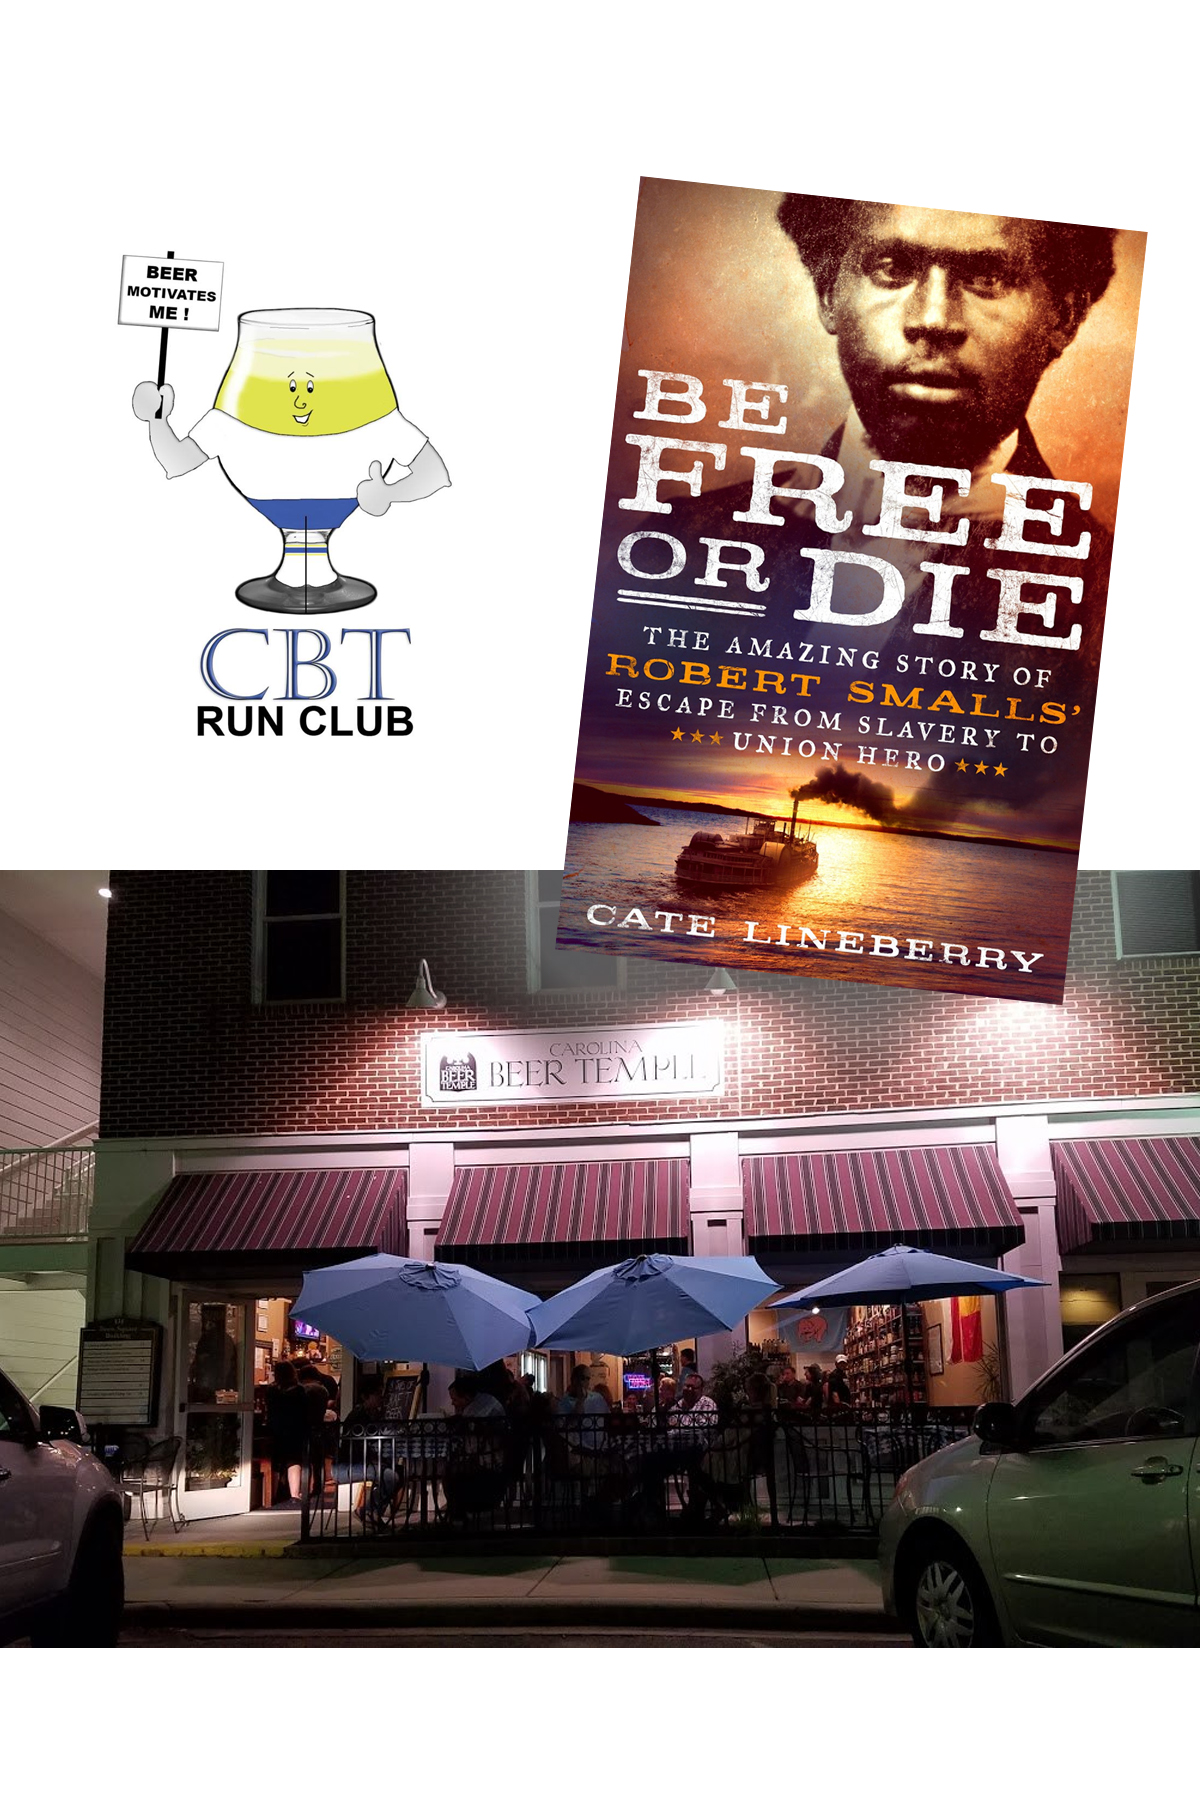 Carolina Beer Temple Book Club: If you've ever hung out in downtown Matthews on a Tuesday evening, you probably know about the Carolina Beer Temple's Tuesday Run Club. But did you know that once a month they also host a book club after the run? In case you're more into reading than running, don't worry, you don't need to run to participate in the book discussion and the books will not be about running. For July, the club will be discussing the book Be Free or Die: The Amazing Store of Robert Smalls Escape from Slavery to Union Hero by Cate Lineberry.Date: Tuesday, July 30, 2019 8:00 pm-9:00 pm - 131 Matthews Station St #1C, Matthews, NC 28105